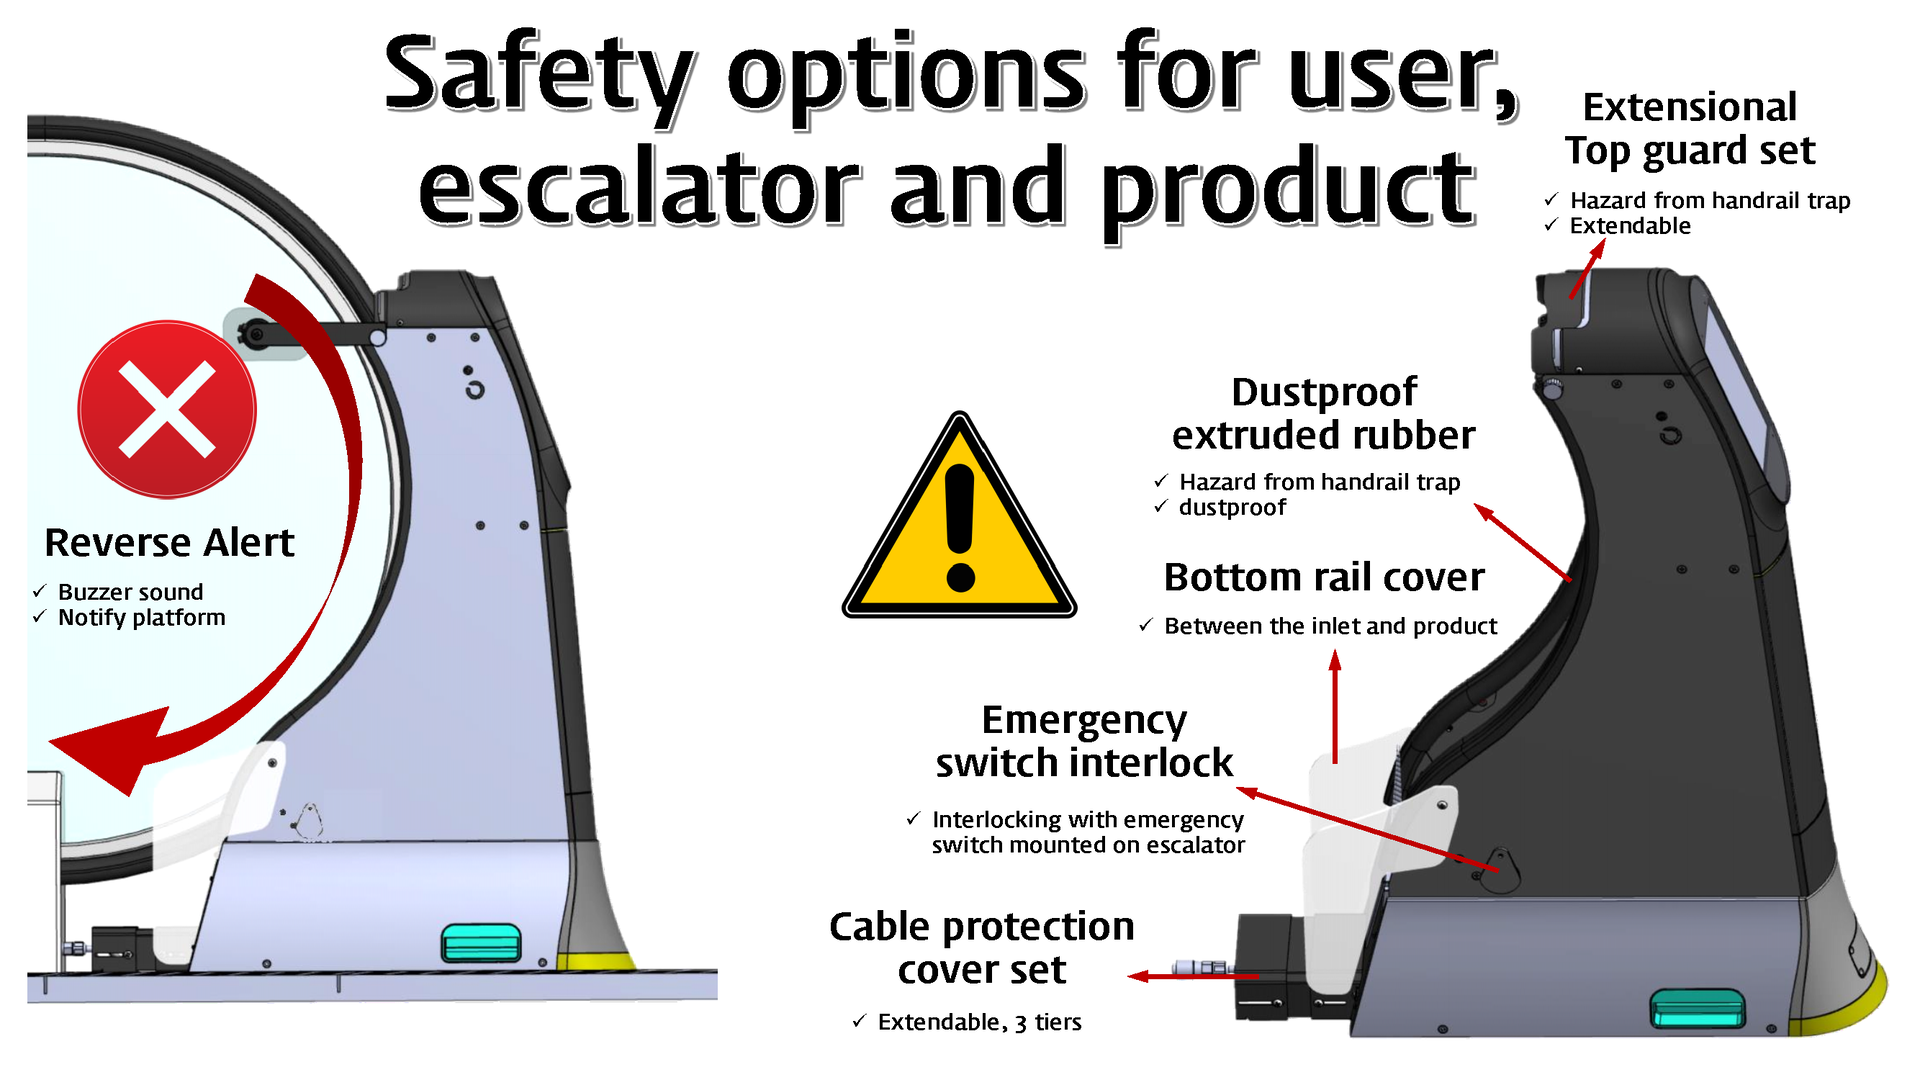 weclean safety options